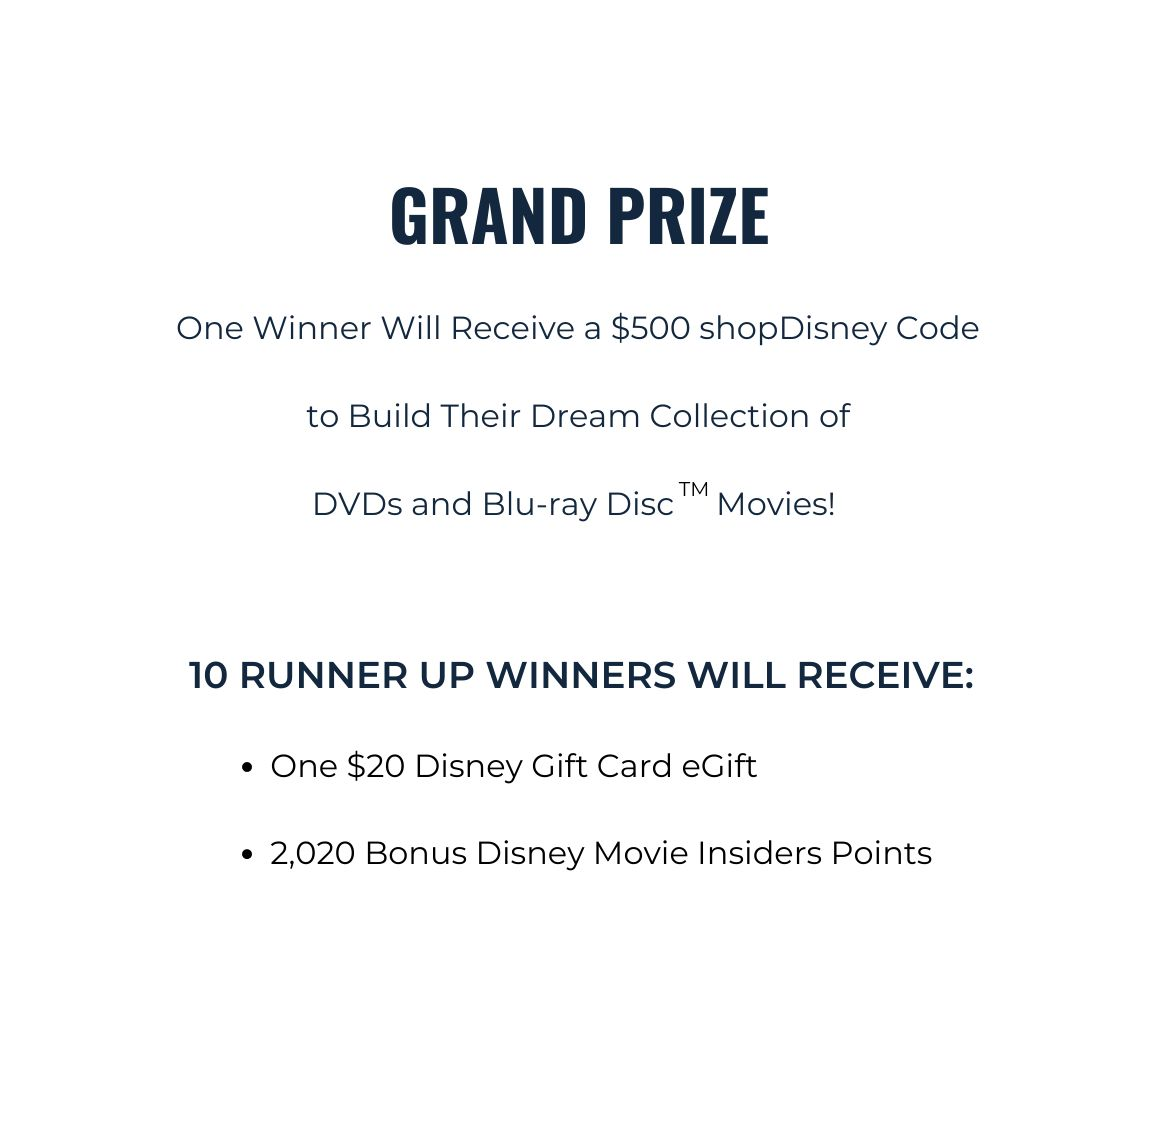 Grand Prize. One $500 shopDisney Code to Build Dream Collection of DVDs and Blu-ray Disc Movies. 10 Runner Up Winners Will Receive 1 $20 Disney Gift Card egift and 2,020 Bonus Disney Movies Insiders Points